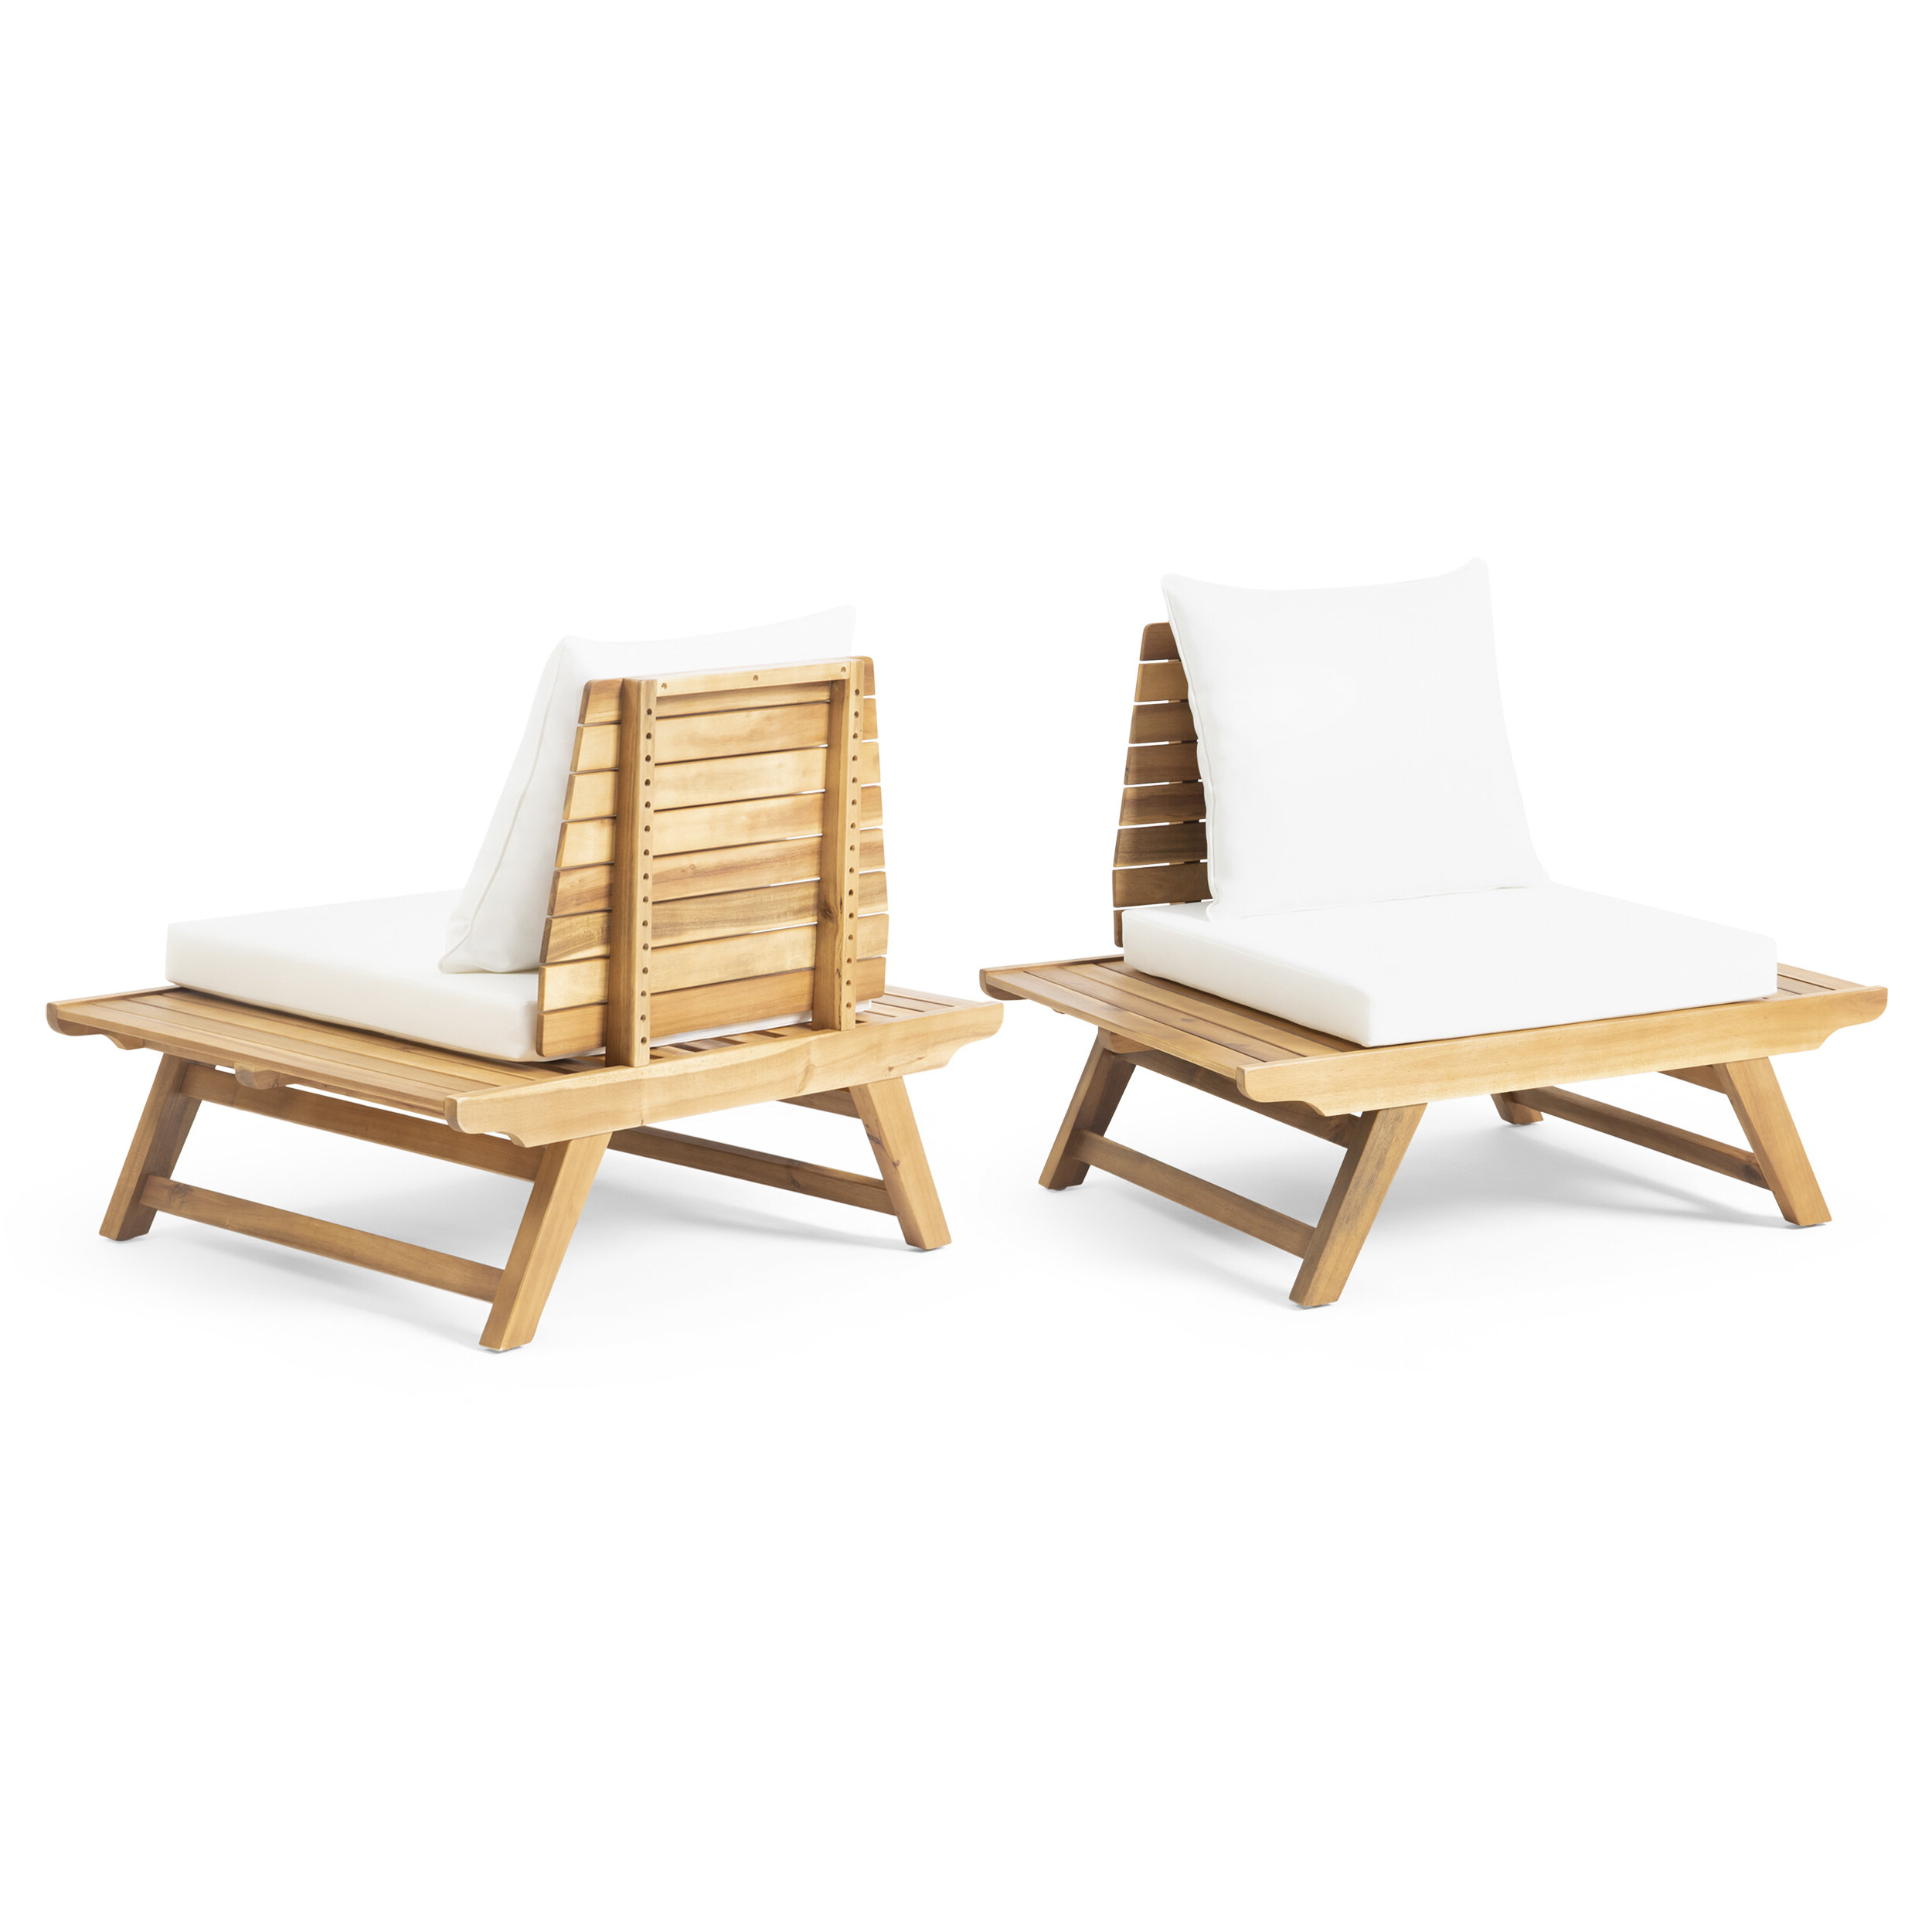 Preferred Bullock Outdoor Wooden Loveseats With Cushions Inside Bullock Outdoor Patio Chair With Cushions (View 15 of 20)